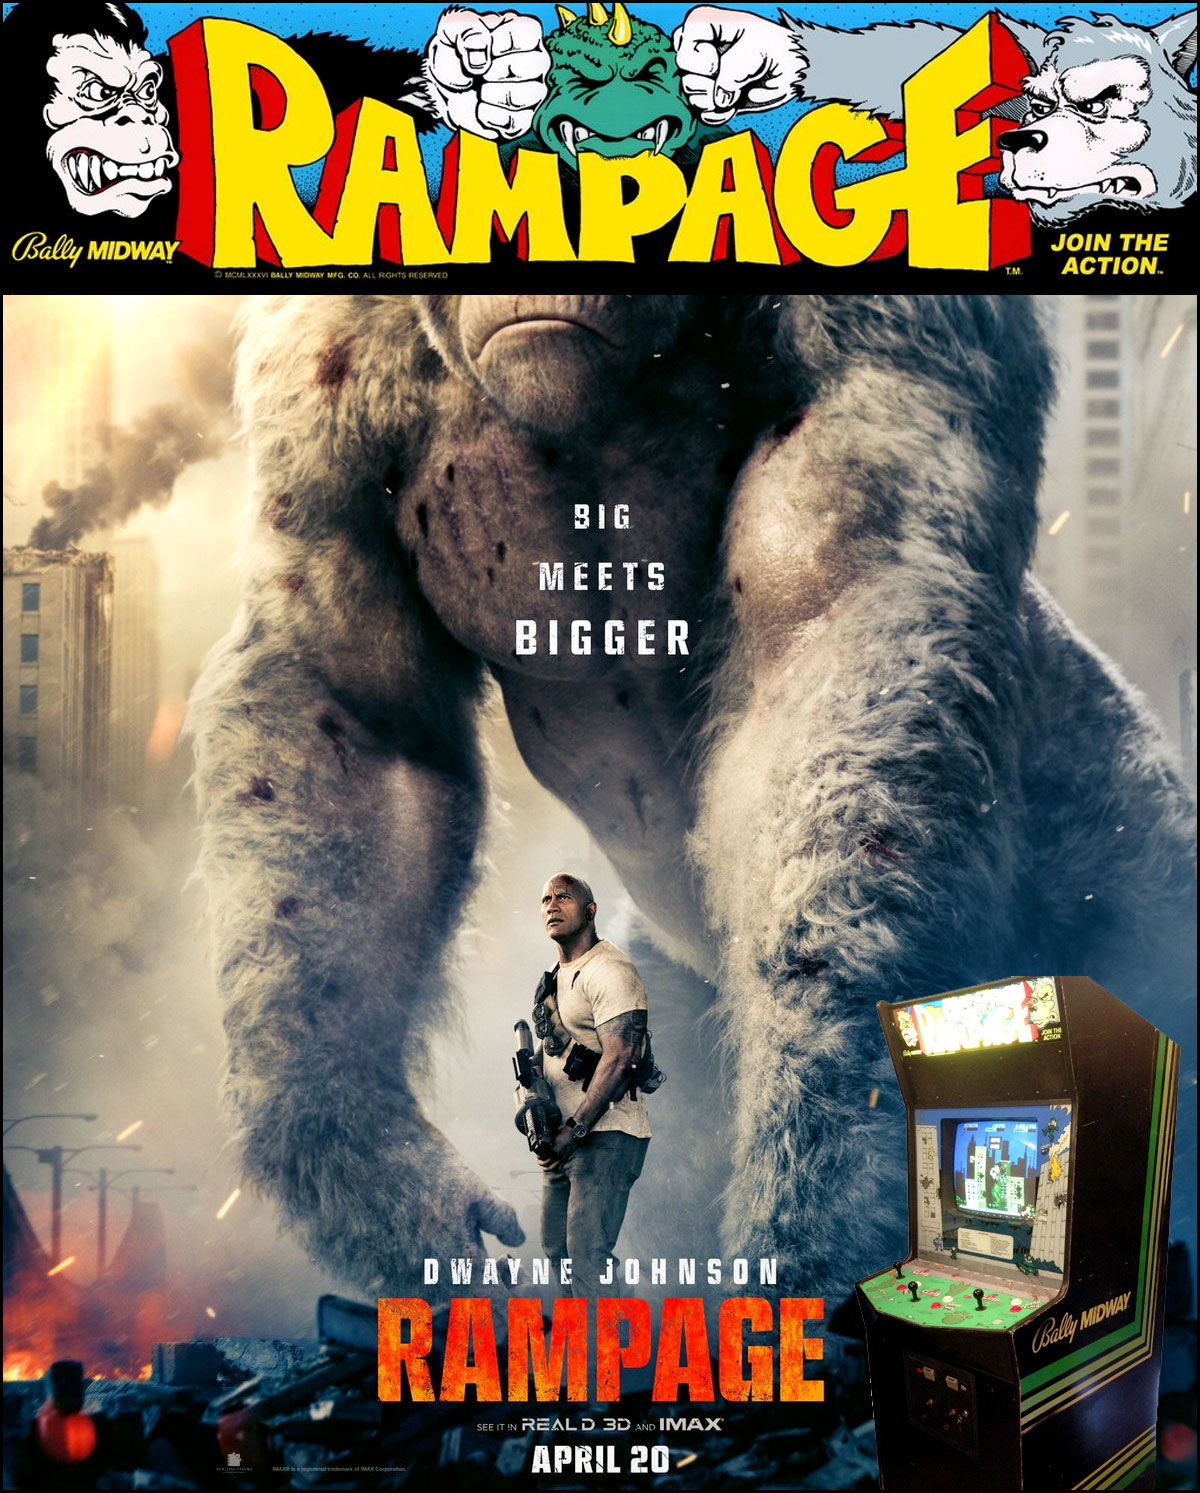 The Rampage arcade game is now a movie